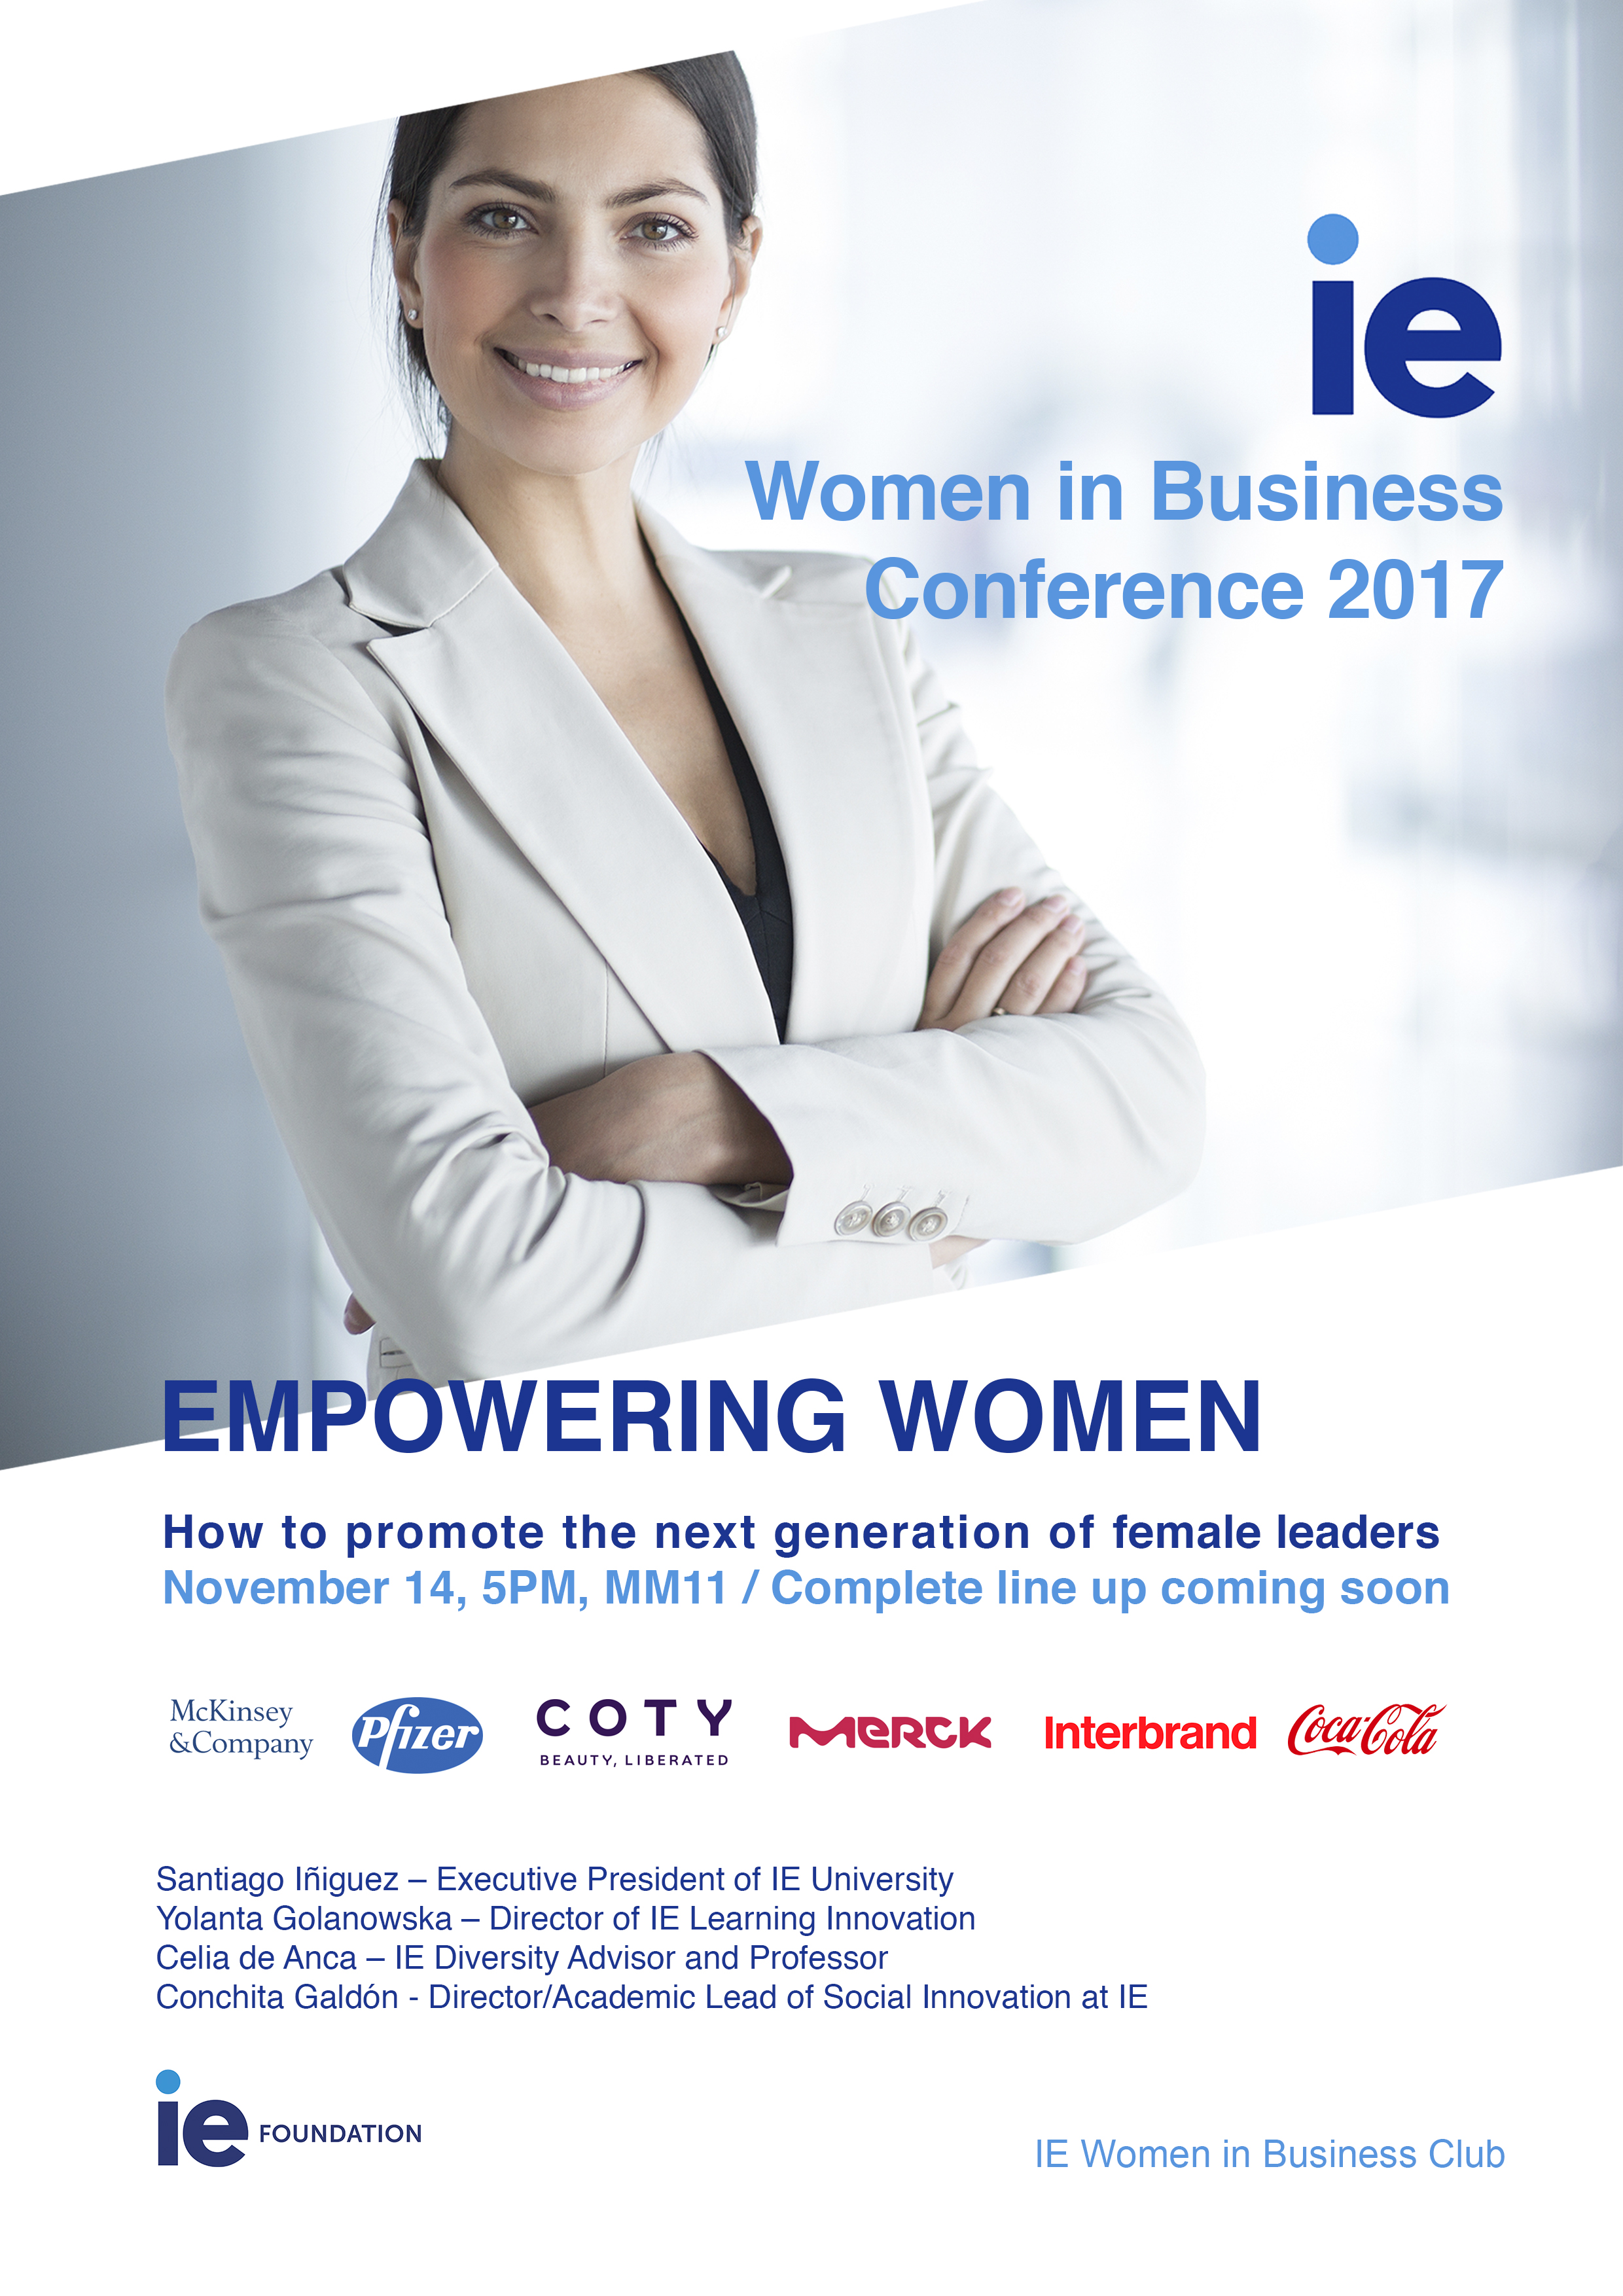 Women in Business Conference 2017 - Empowering Women